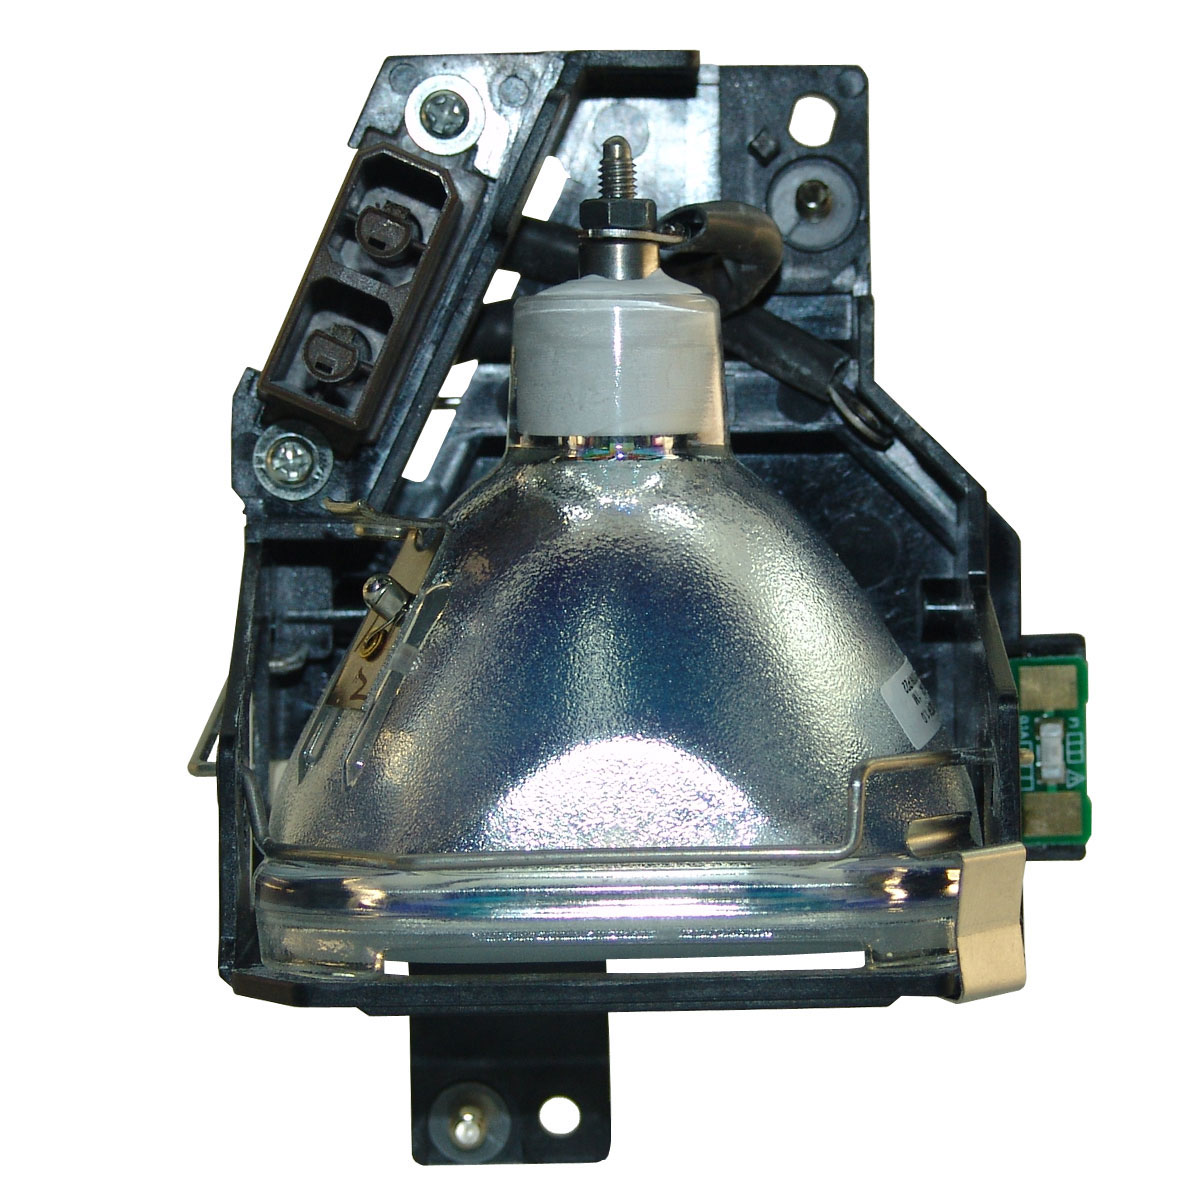 Original Philips Projector Lamp Replacement with Housing for Boxlight MP350M-930 - image 4 de 5